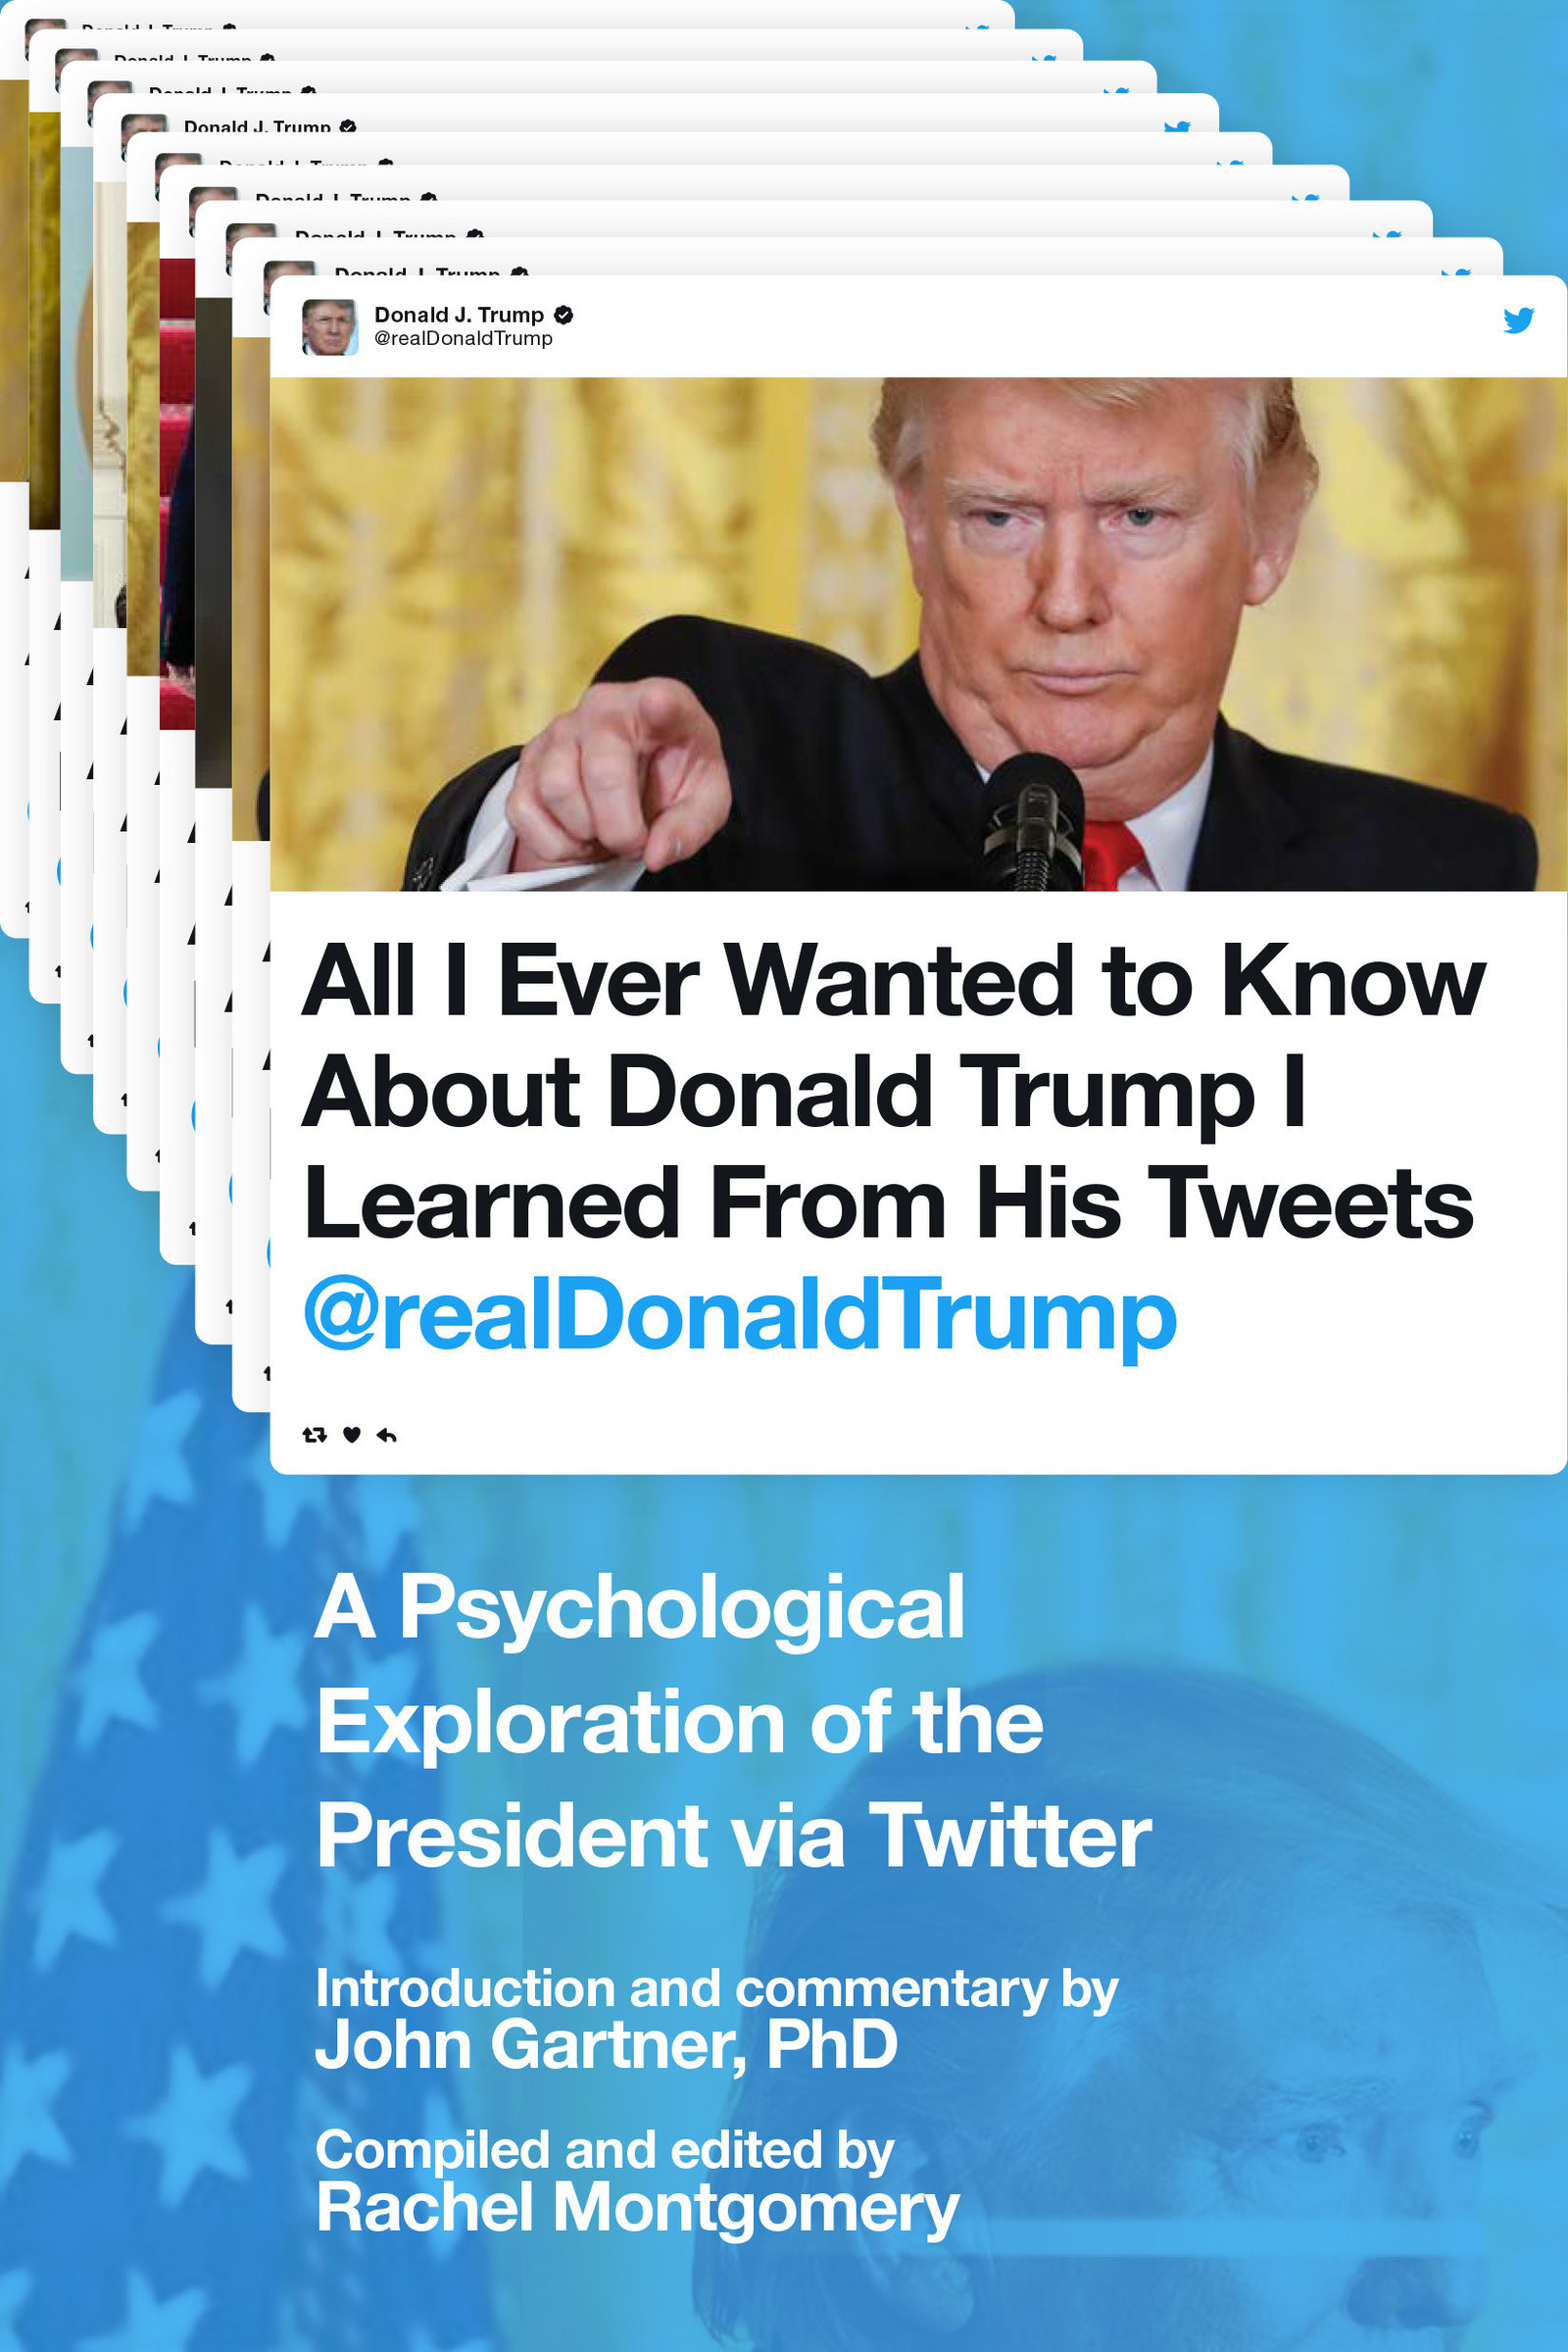 All I Ever Wanted to Know About Donald Trump I Learned from His Tweets: A Psychological Exploration of the President via Twitter - Compiled and edited by Rachel Montgomery; Introduction by John Gartner, PhD - Skyhorse Publishing paperback; September 19, 2017; $14.99